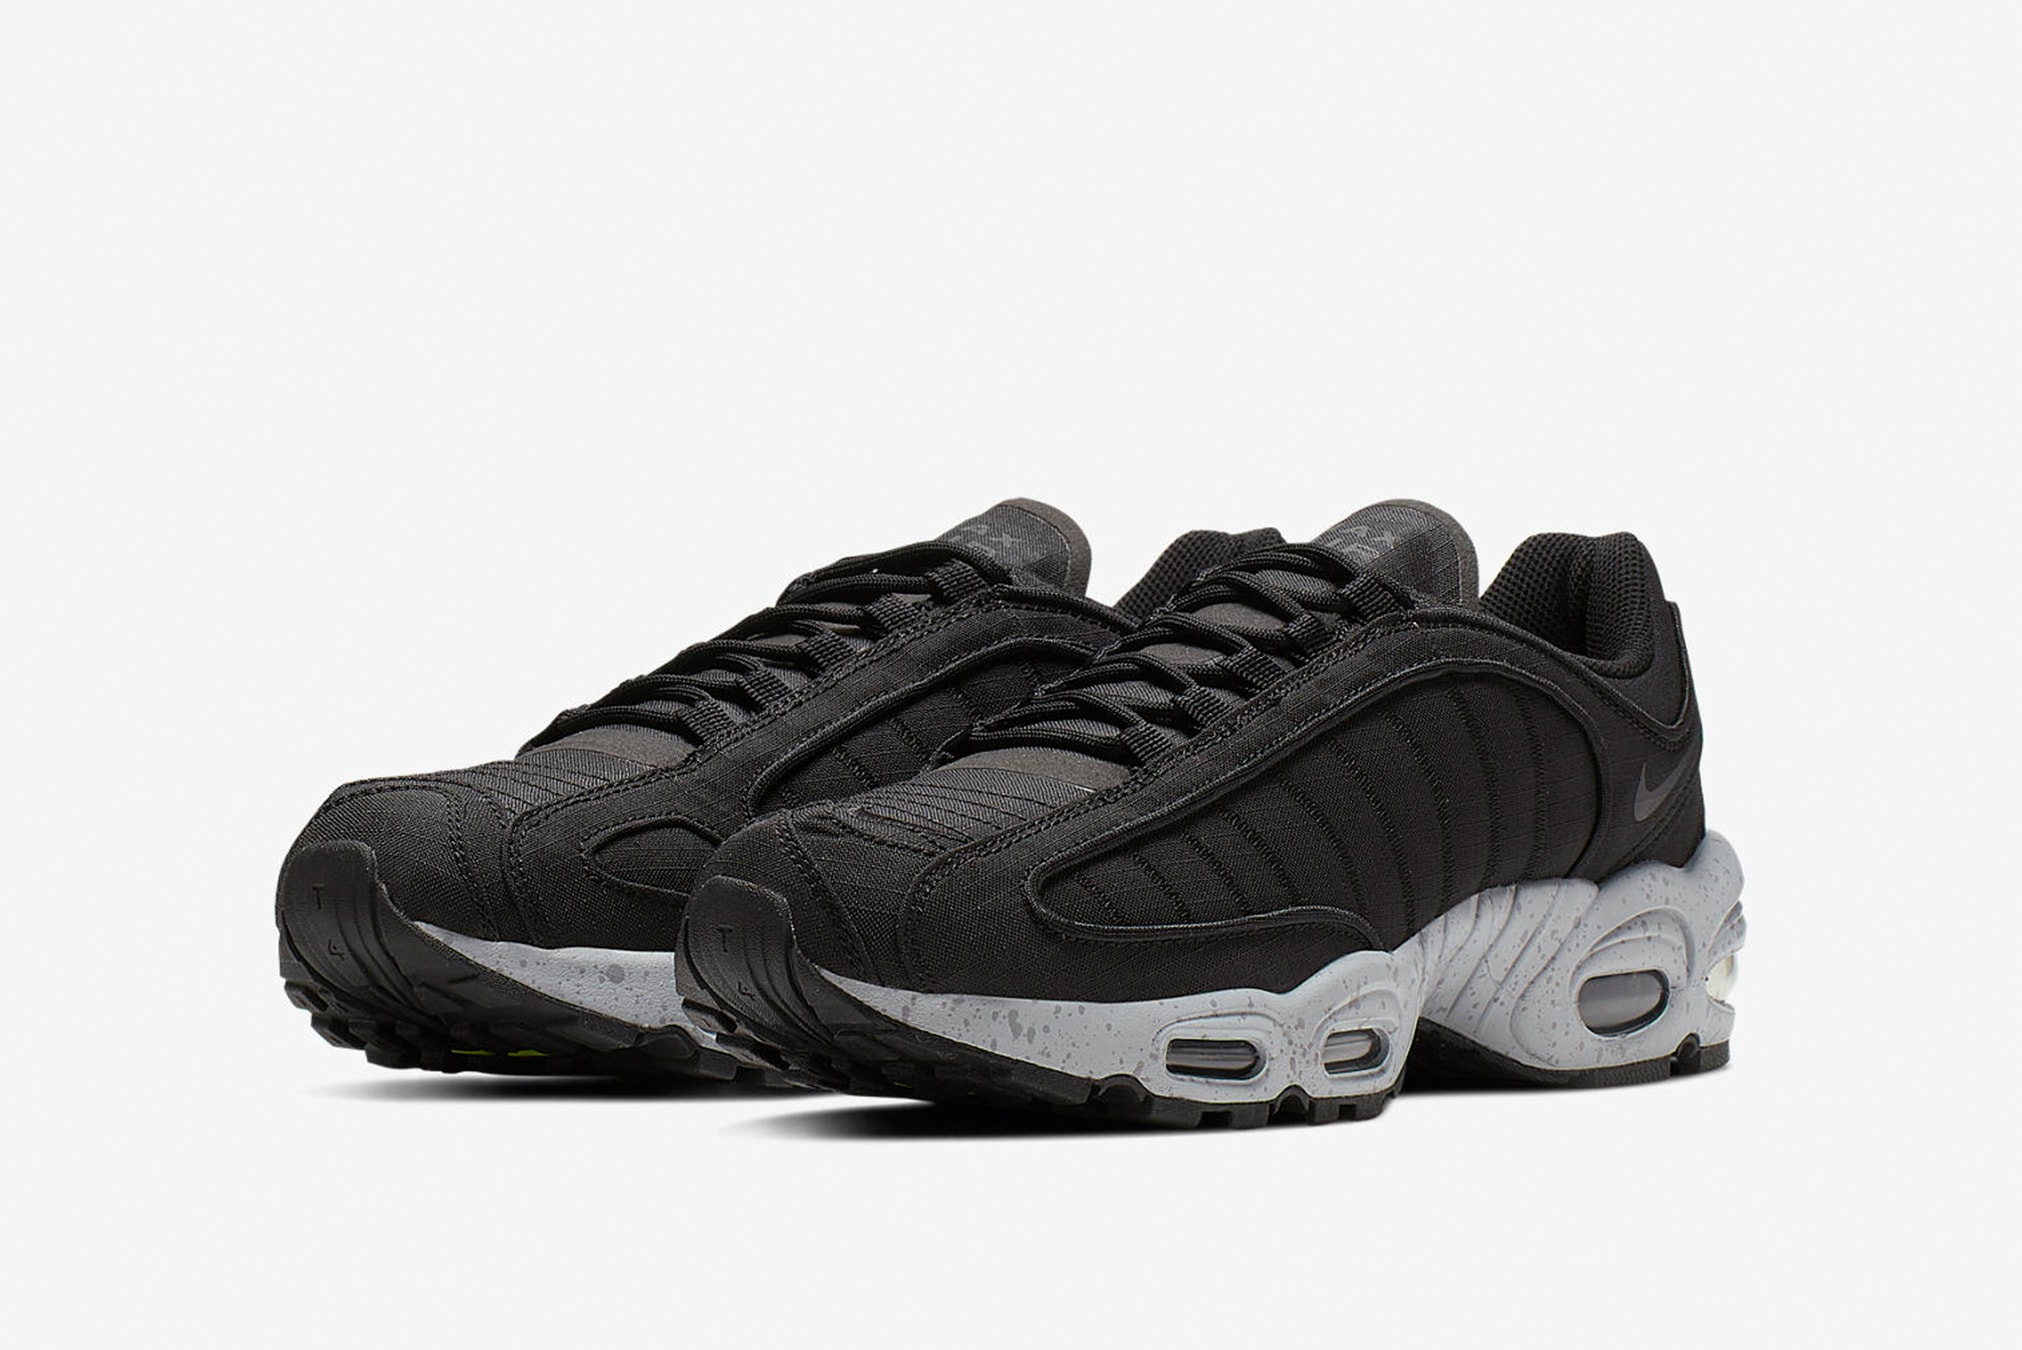 437d1ab57 END. Features   Nike Air Max Tailwind IV SP - Register Now on END ...